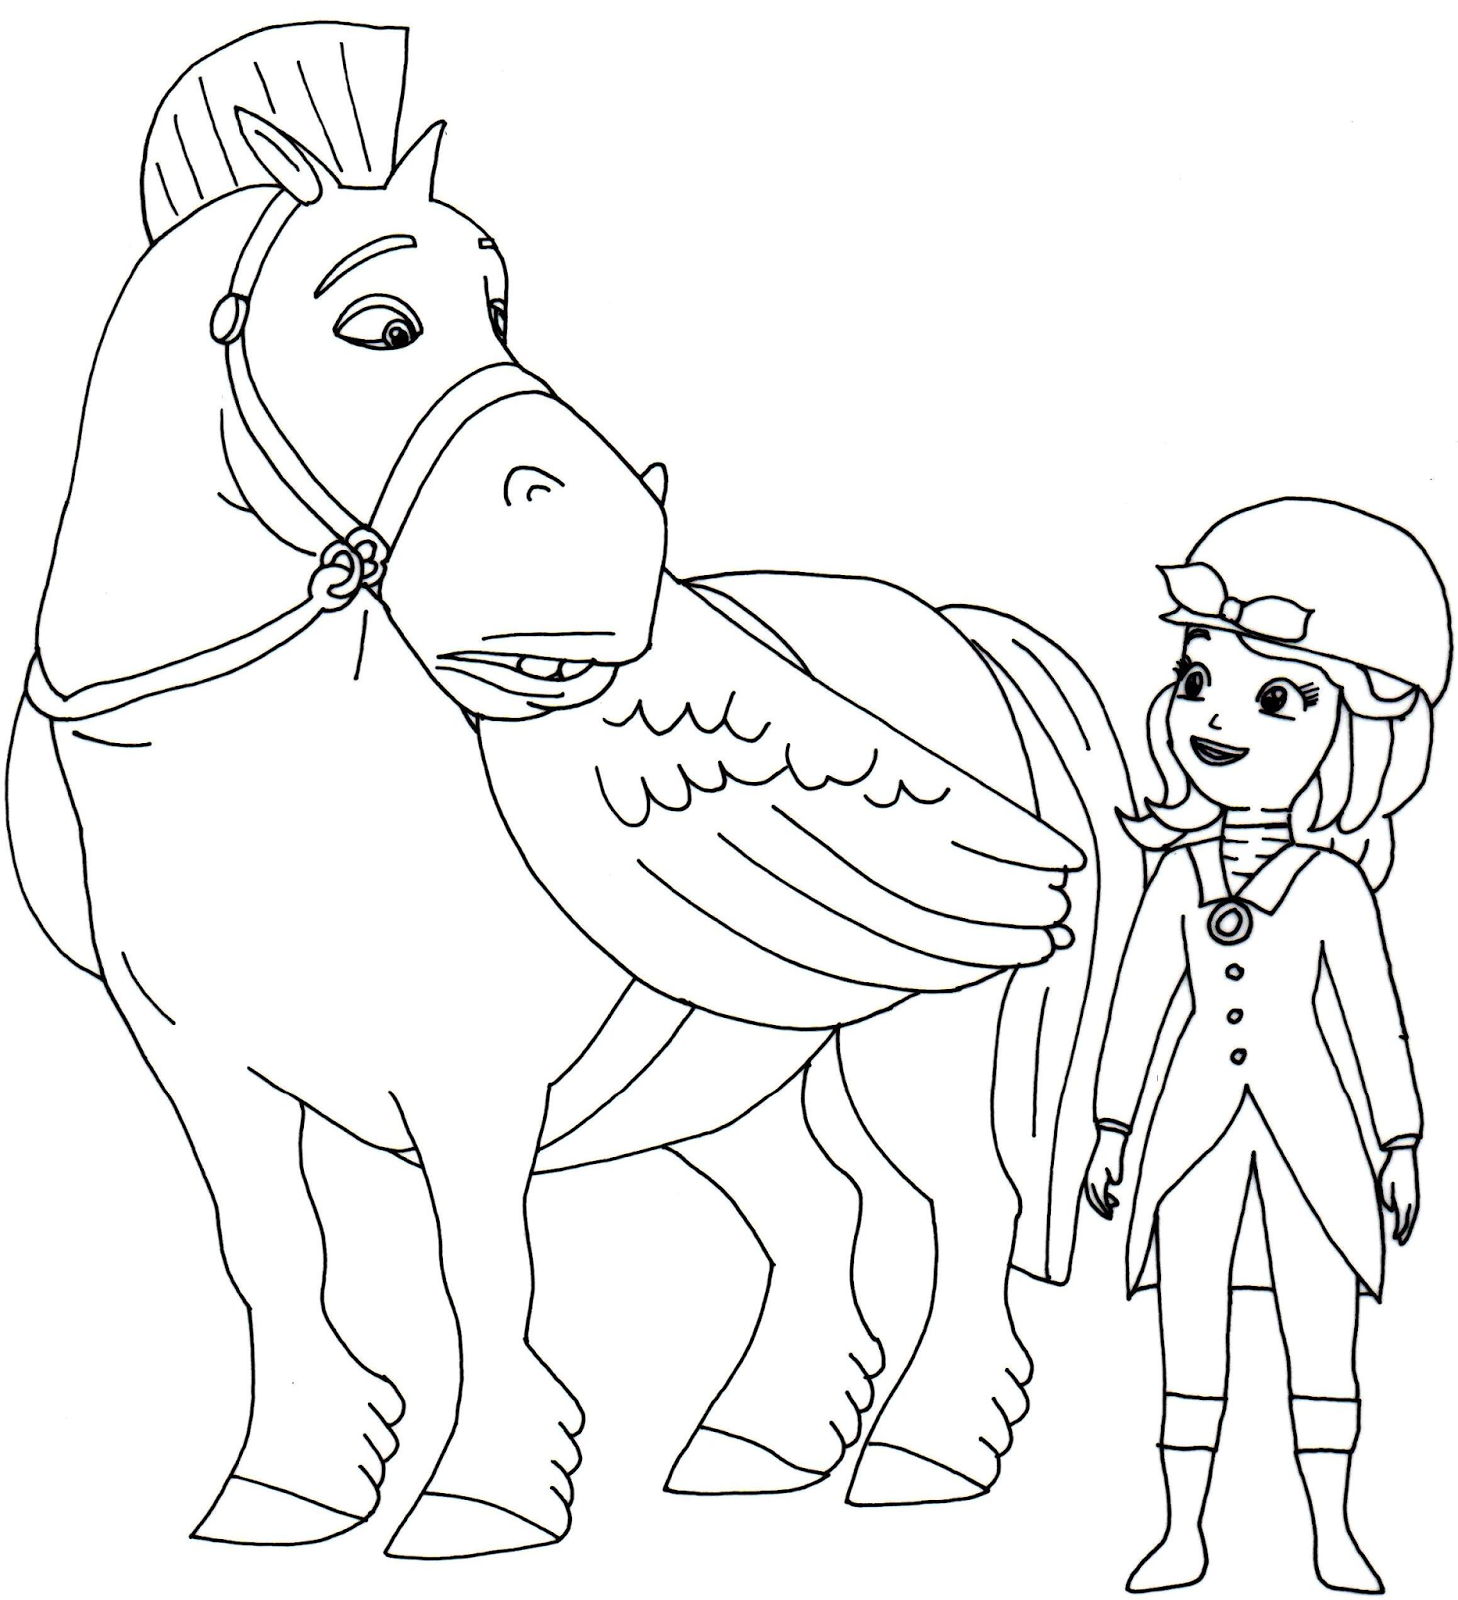 Sofia The First Coloring Pages Sofia Disney Coloring Pages Coloring Pages Coloring Books